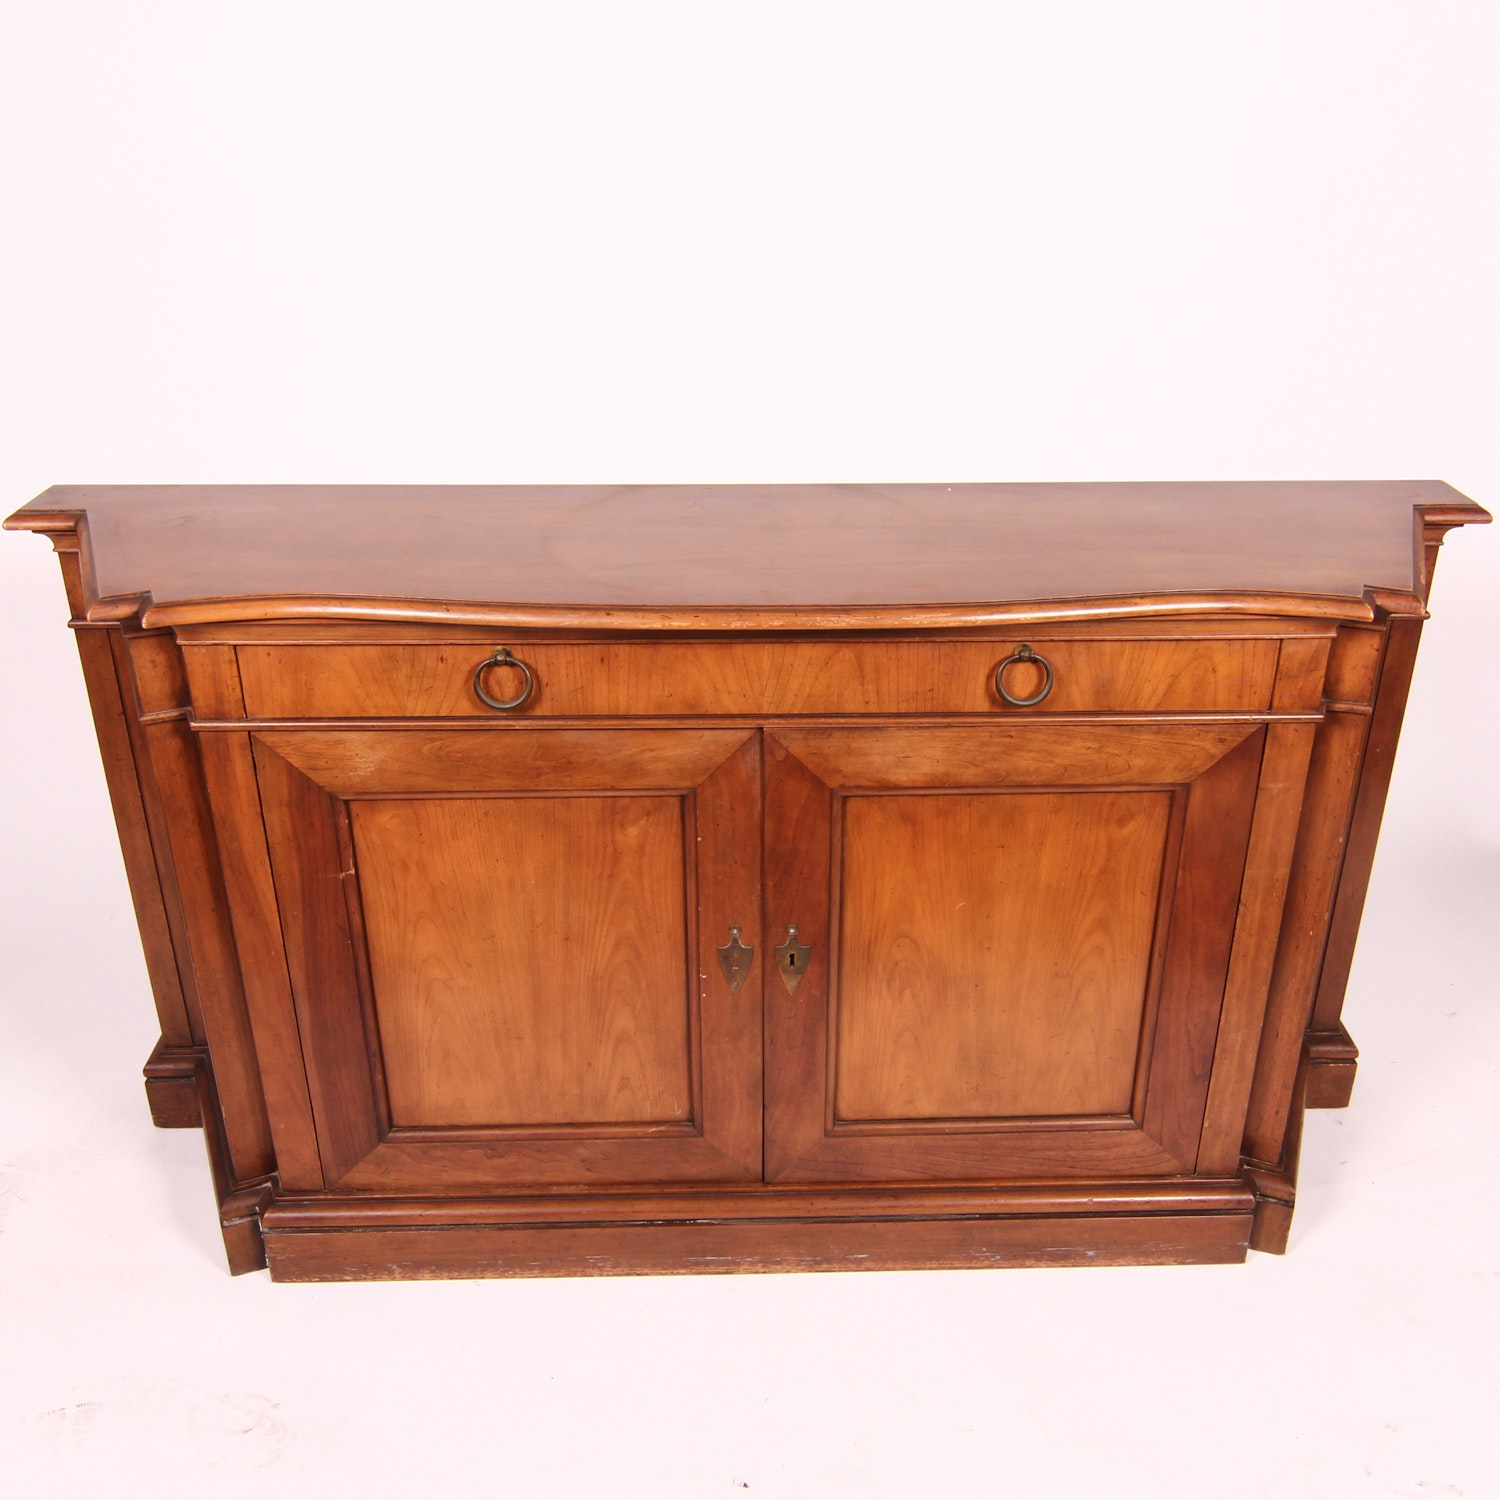 Cherry Breakfront Sideboard from Baker Furniture